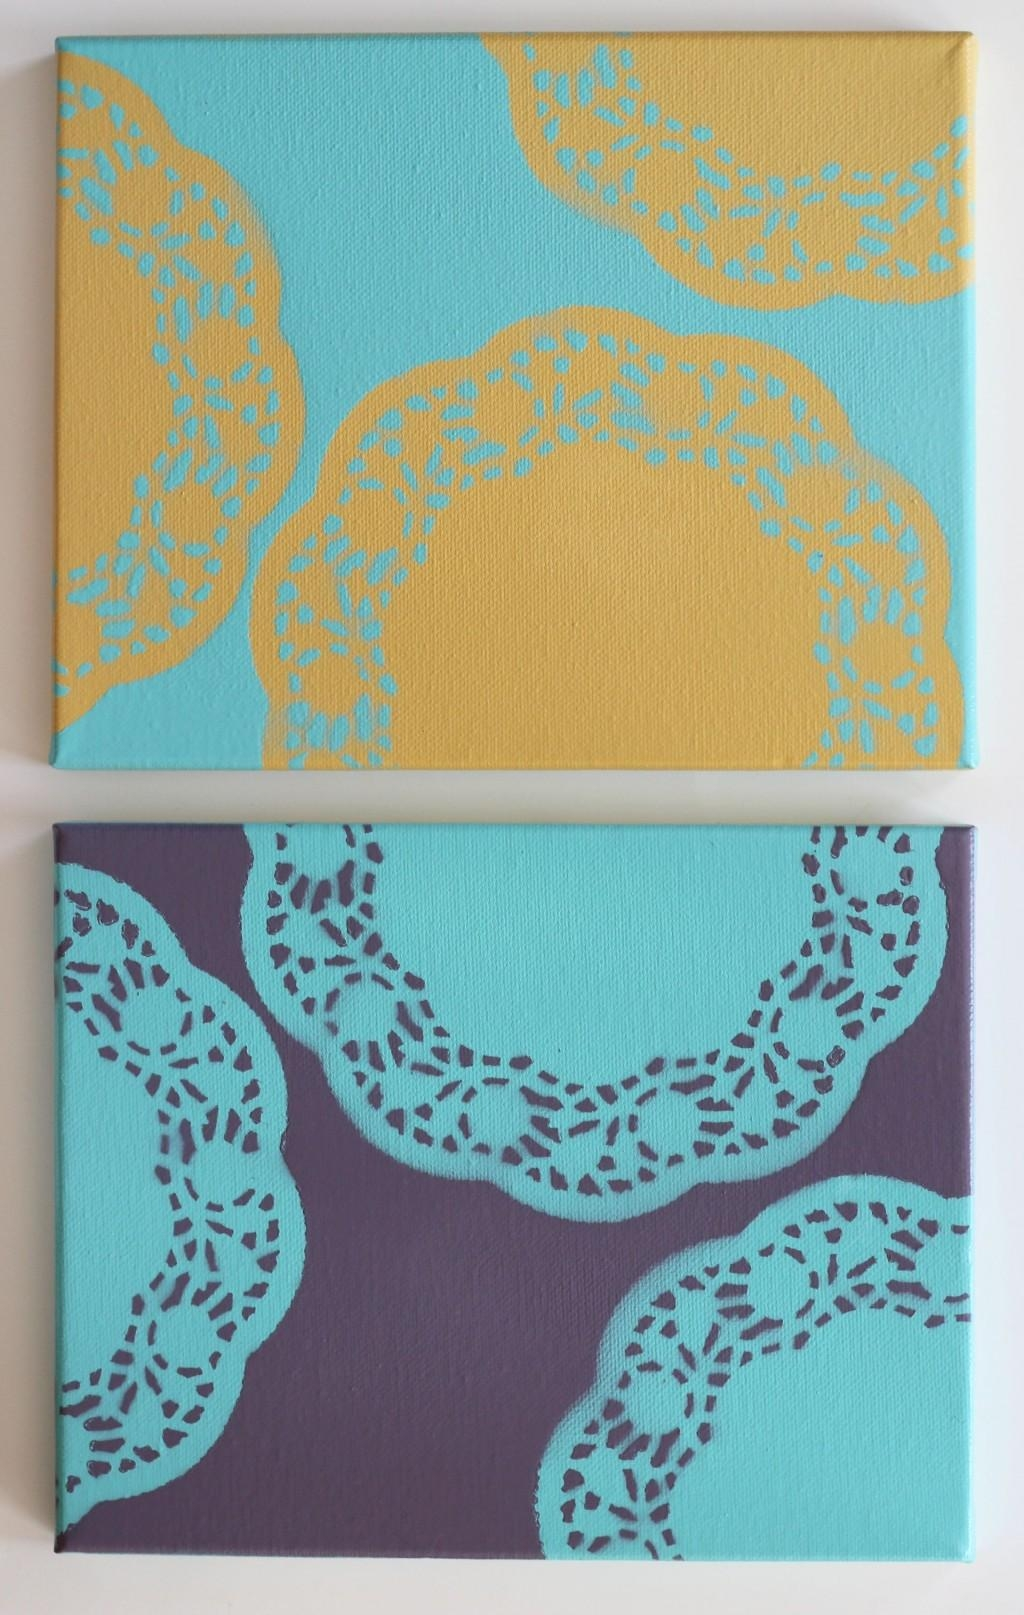 Howling Doilies As Wells As Easy Diy Wall Art Along With Easy Diy Pertaining To Small Canvas Wall Art (Image 10 of 20)